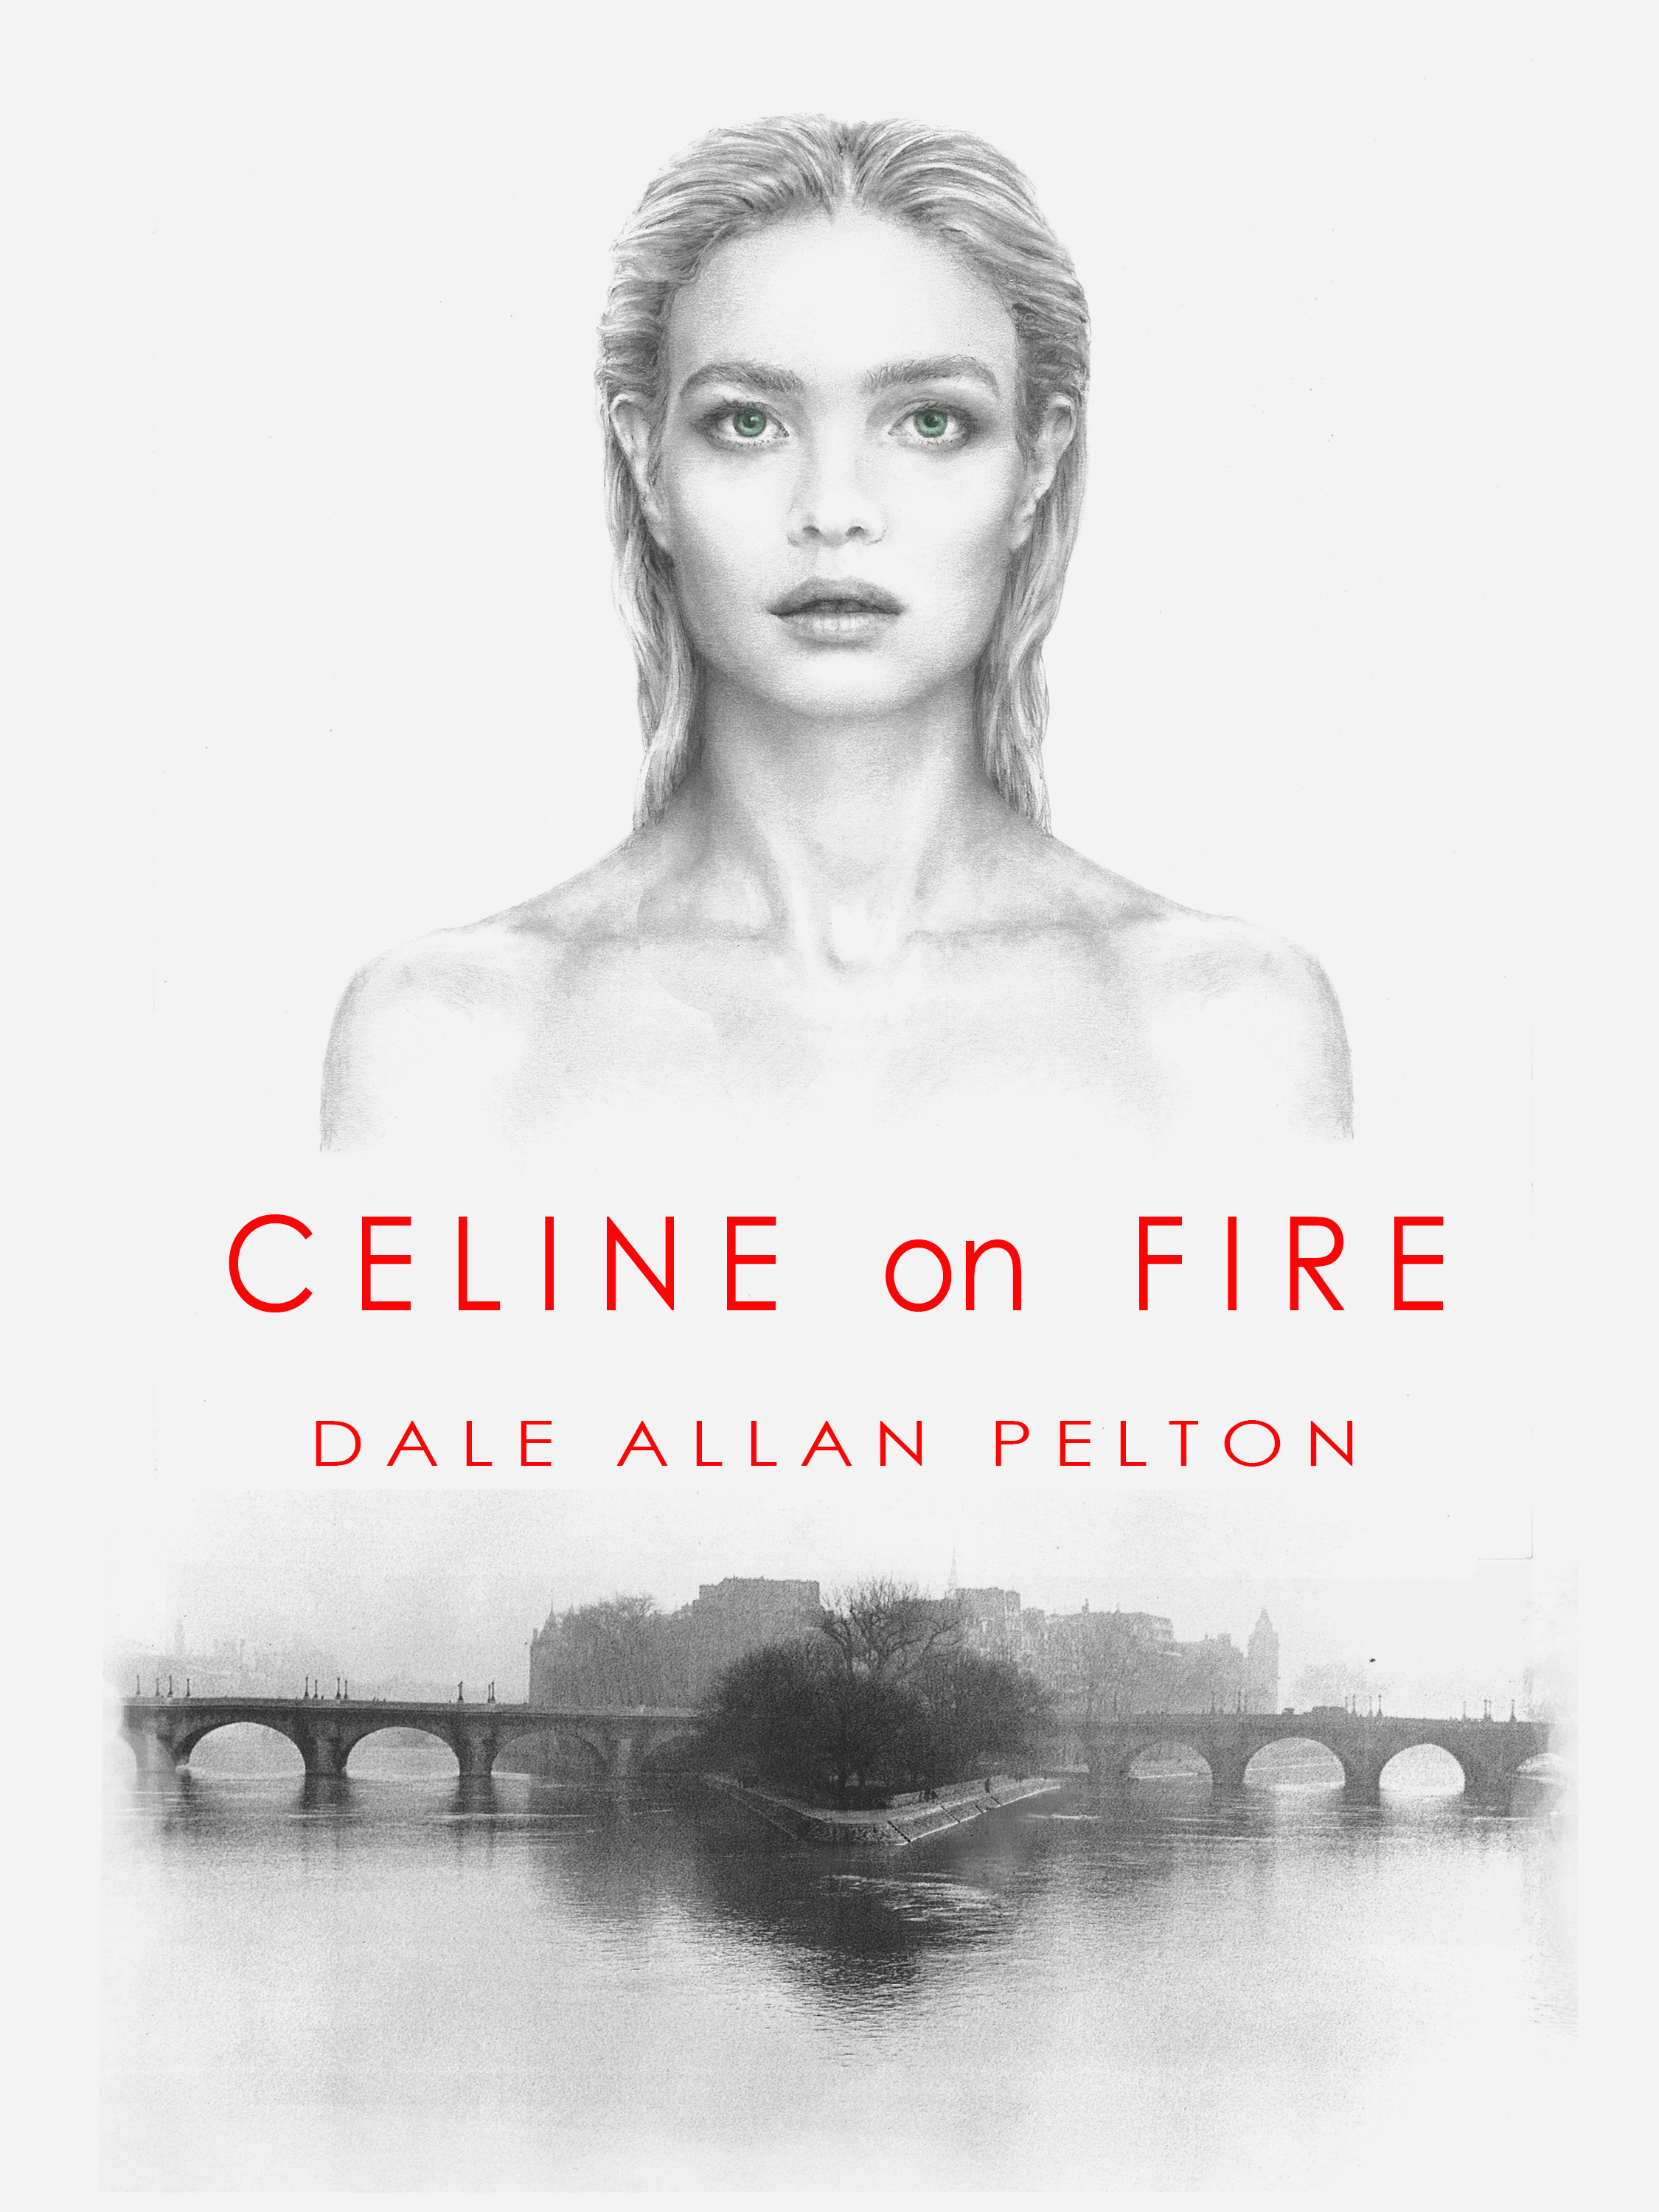 Celine on Fire